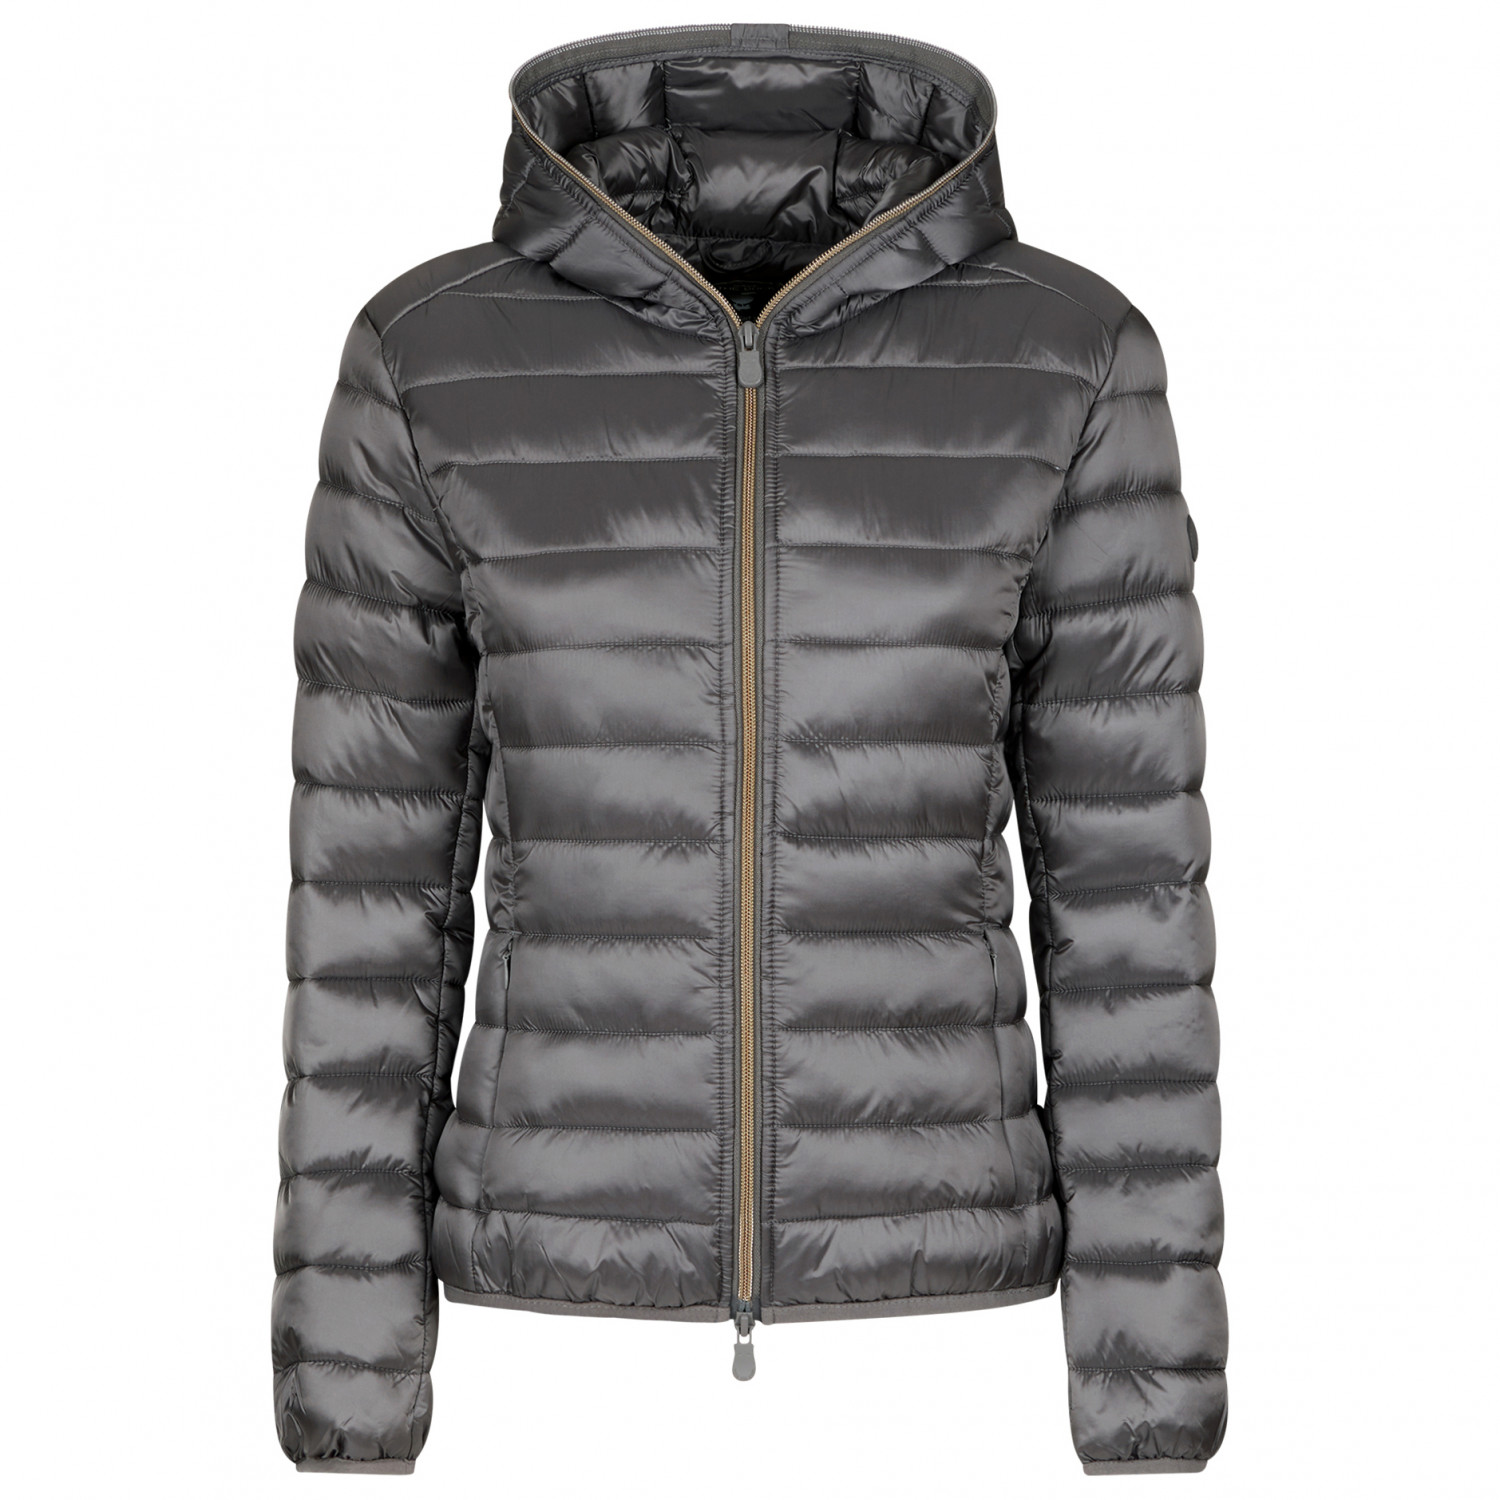 low priced 70203 4c99e Save the Duck - Women's Iris9 Hooded Jacket - Synthetic jacket - Midgrey | L